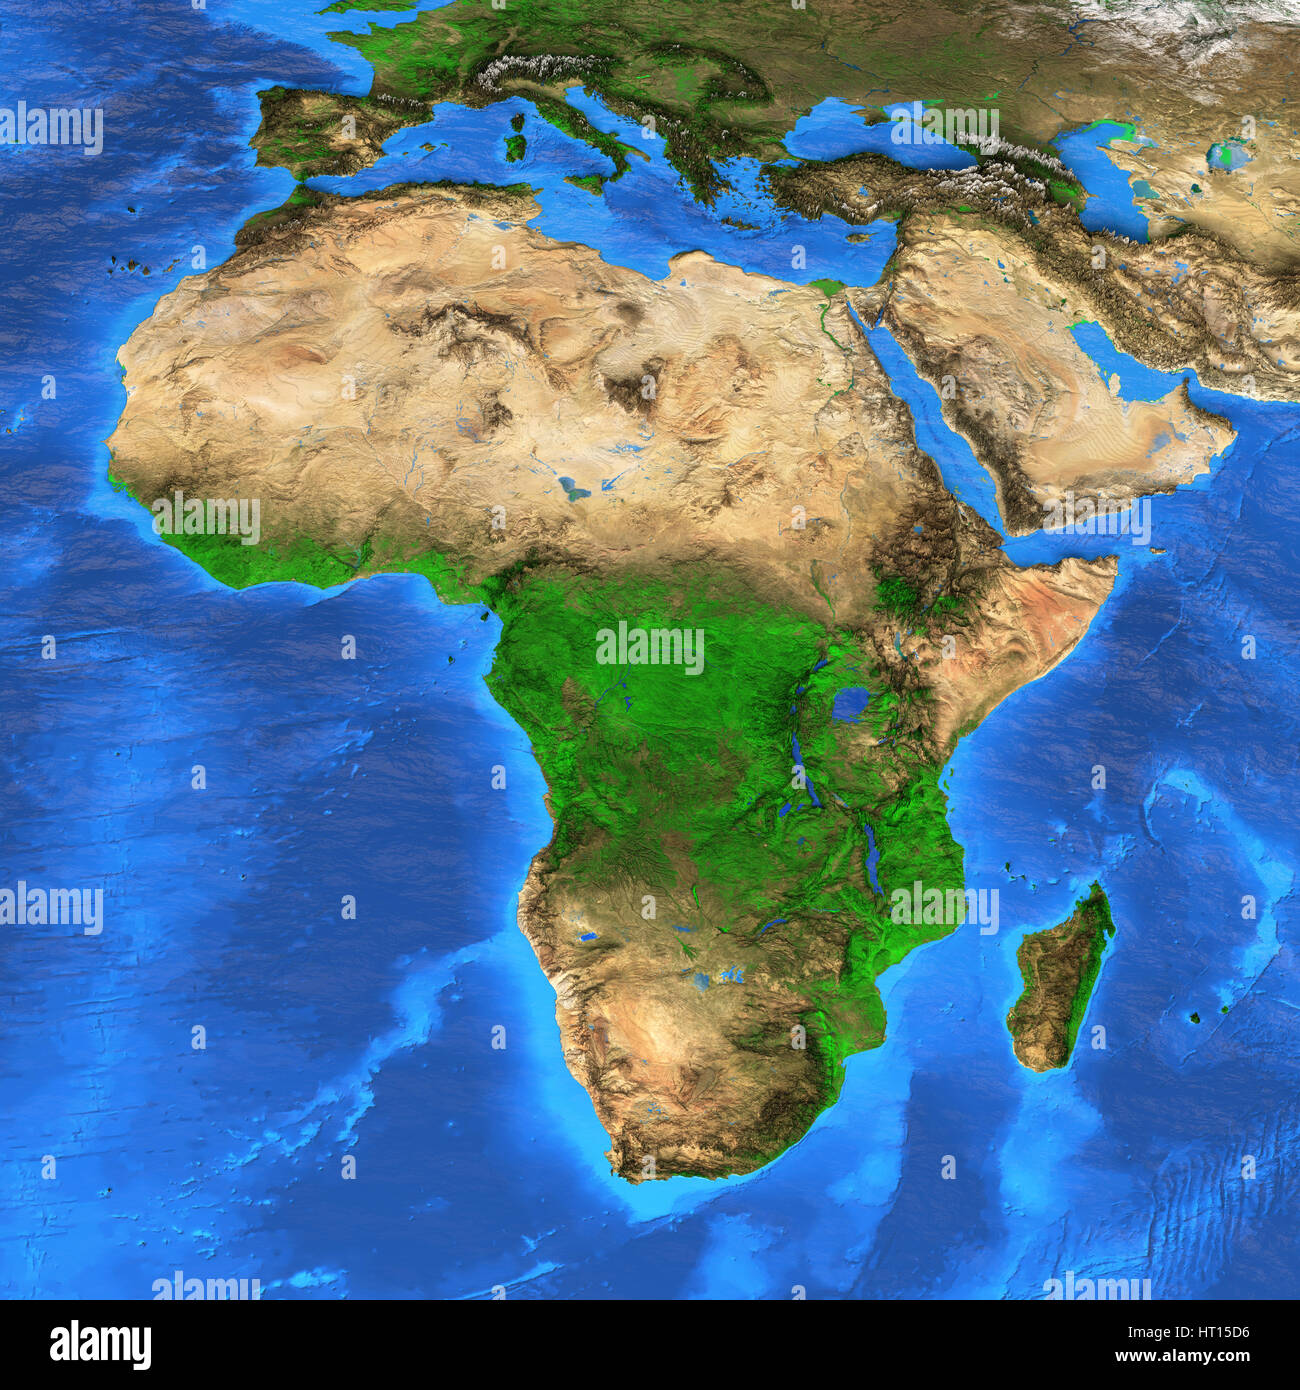 Detailed Satellite View Of The Earth And Its Landforms Africa Map